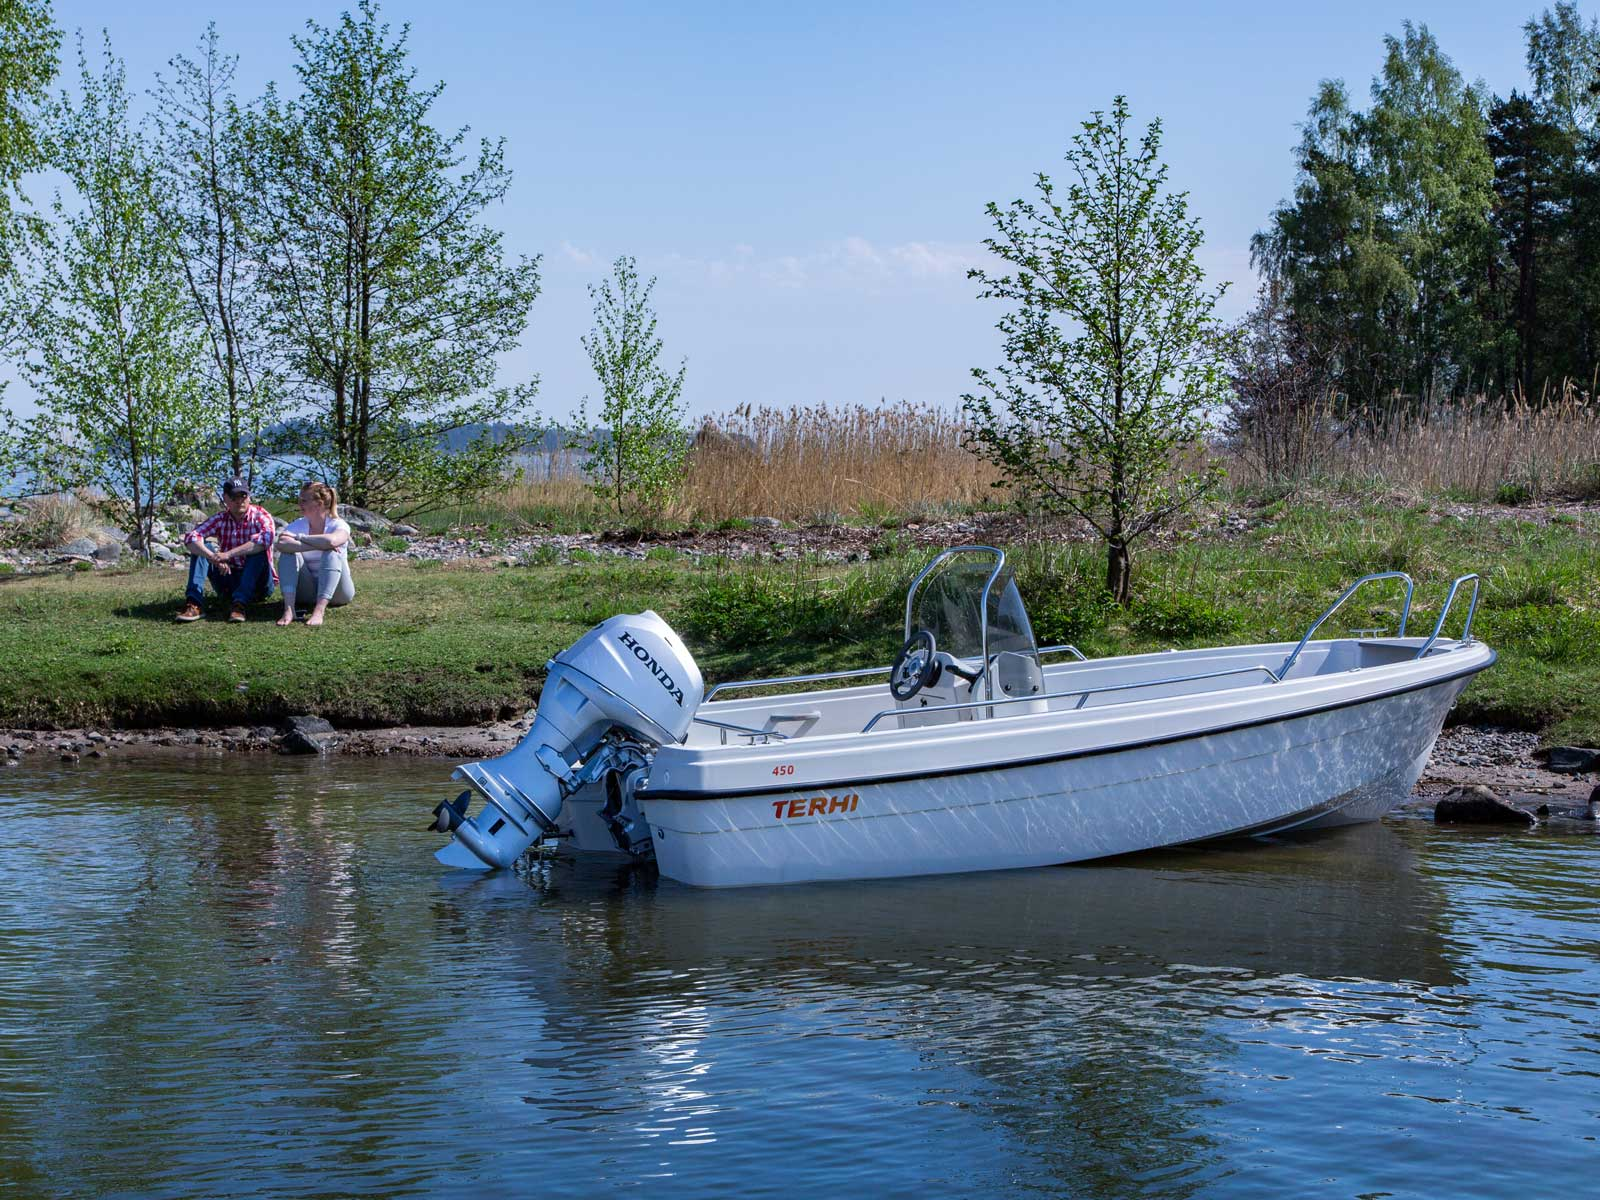 Terhi 450 CC   Boat Solutions, Utting am Ammersee